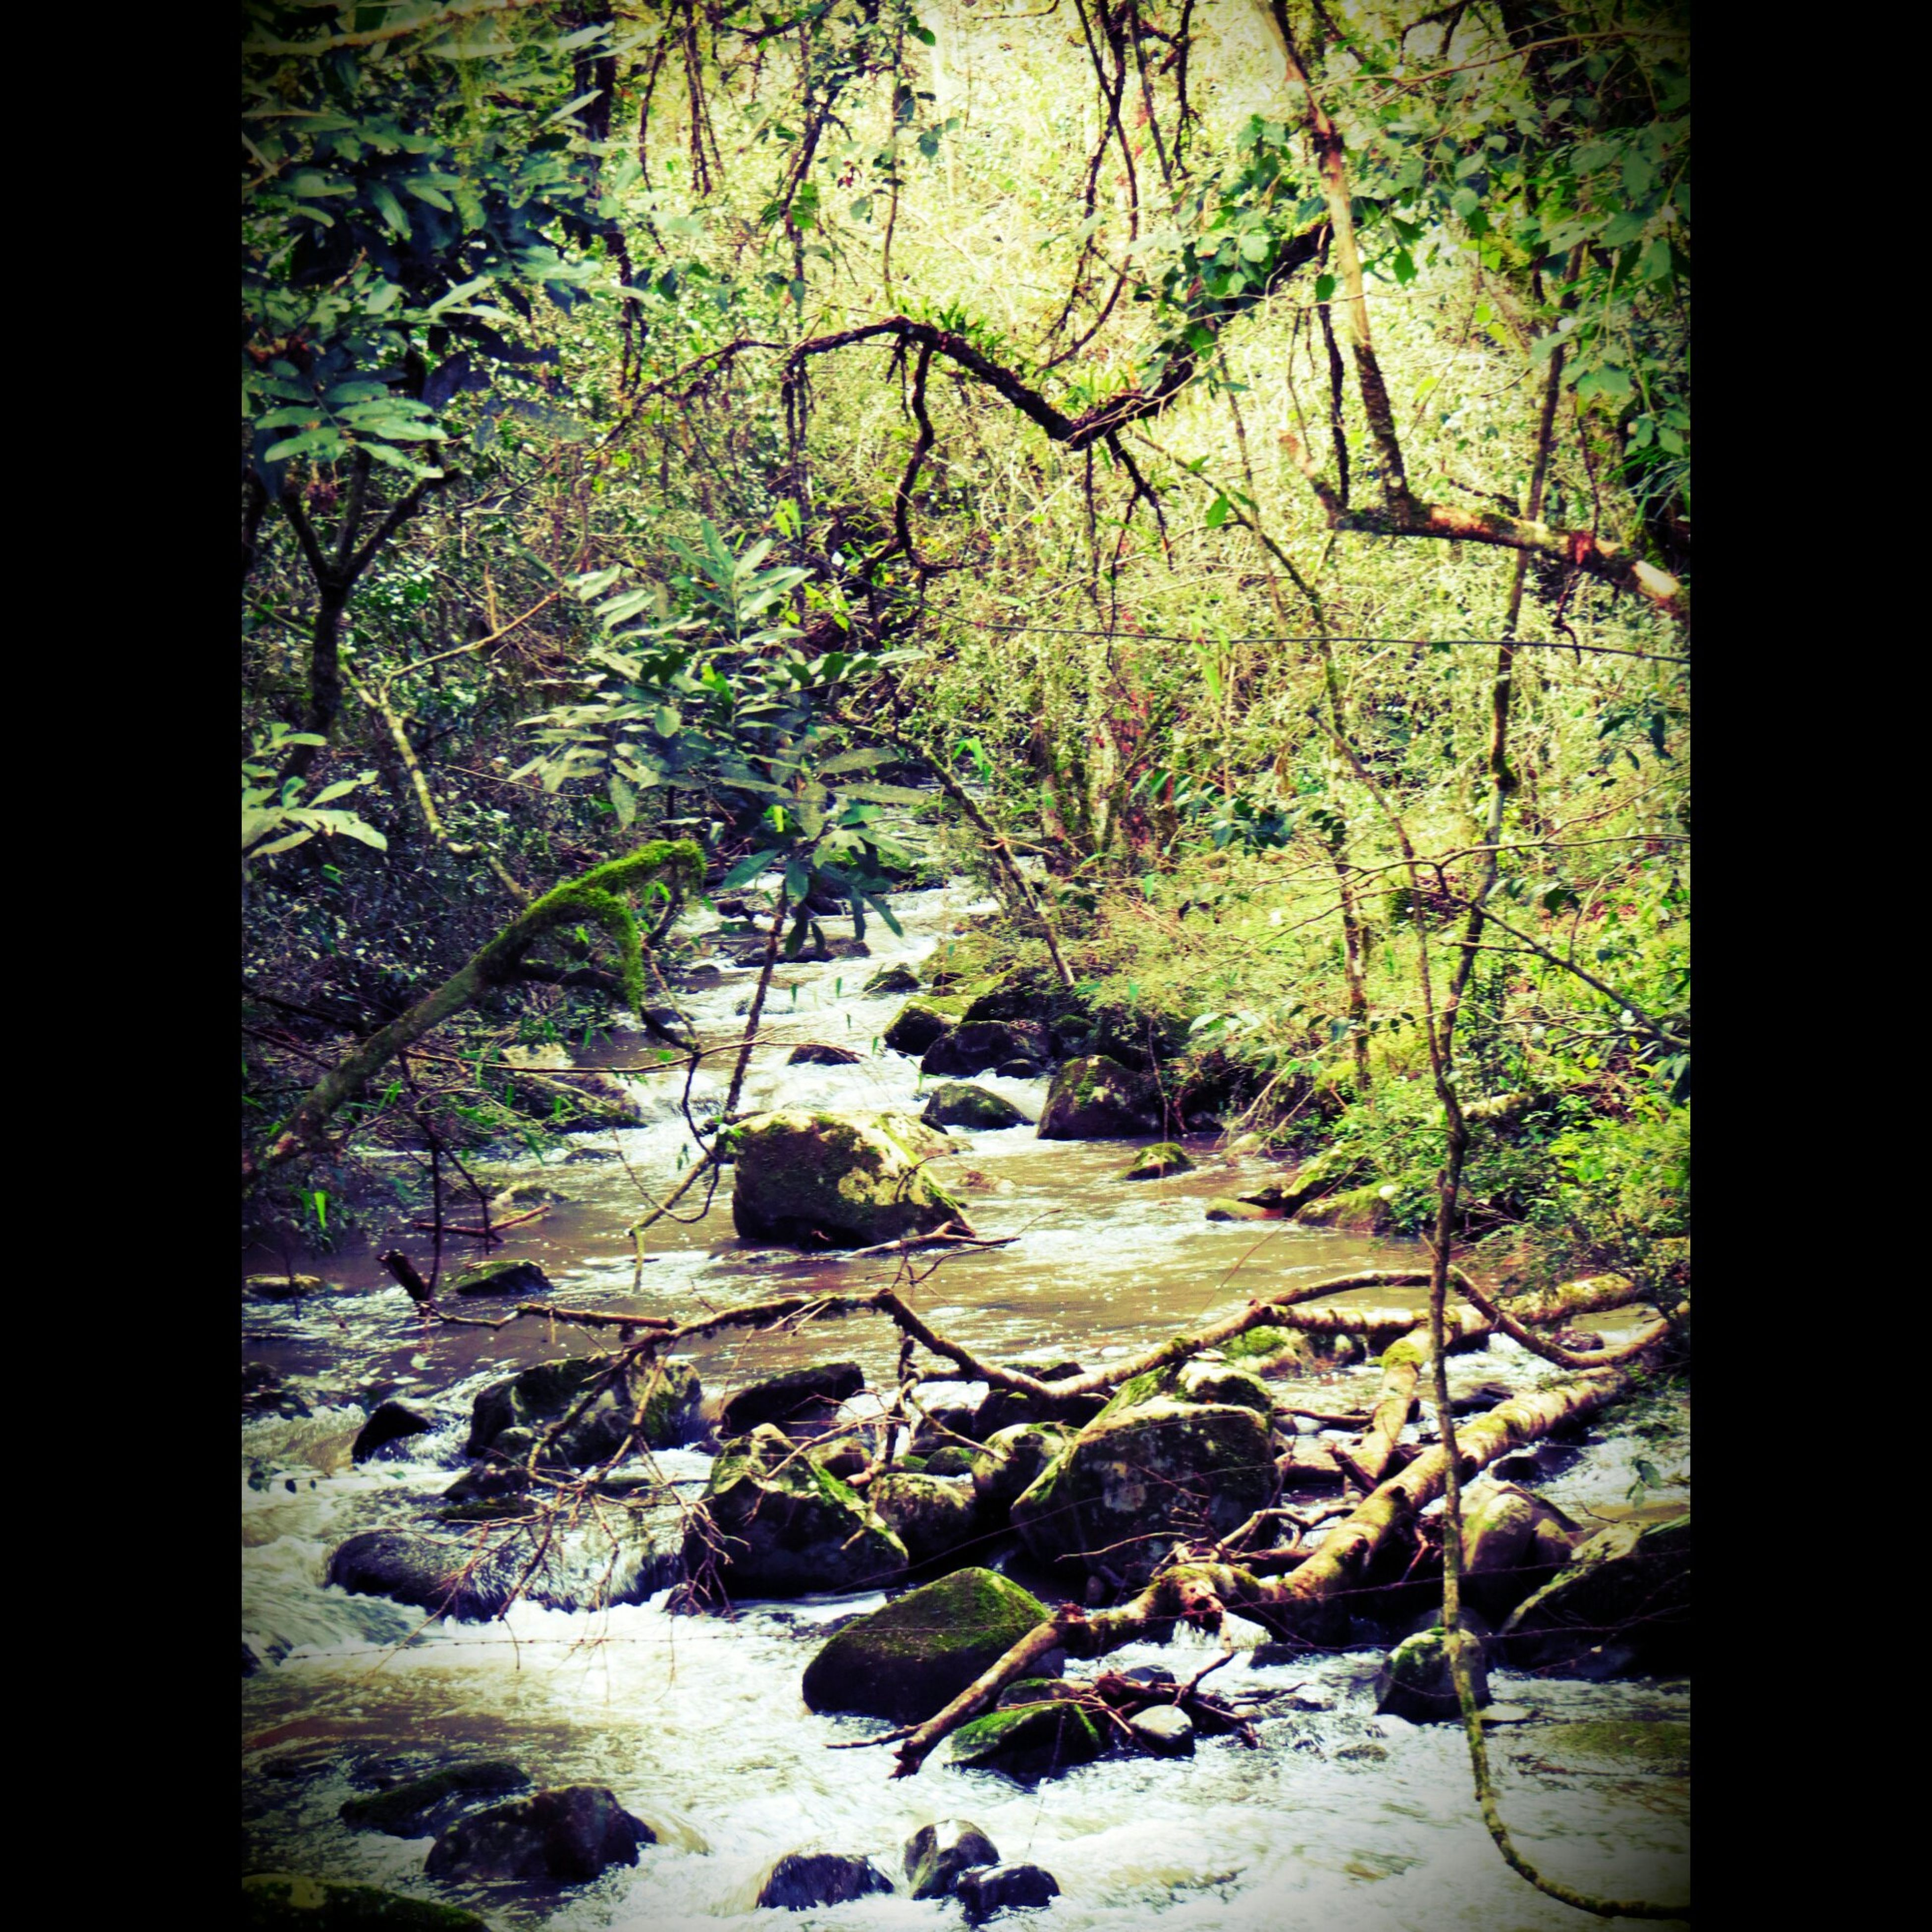 tree, forest, stream, tranquility, tranquil scene, nature, rock - object, beauty in nature, scenics, water, growth, plant, auto post production filter, day, non-urban scene, non urban scene, rock, green color, no people, transfer print